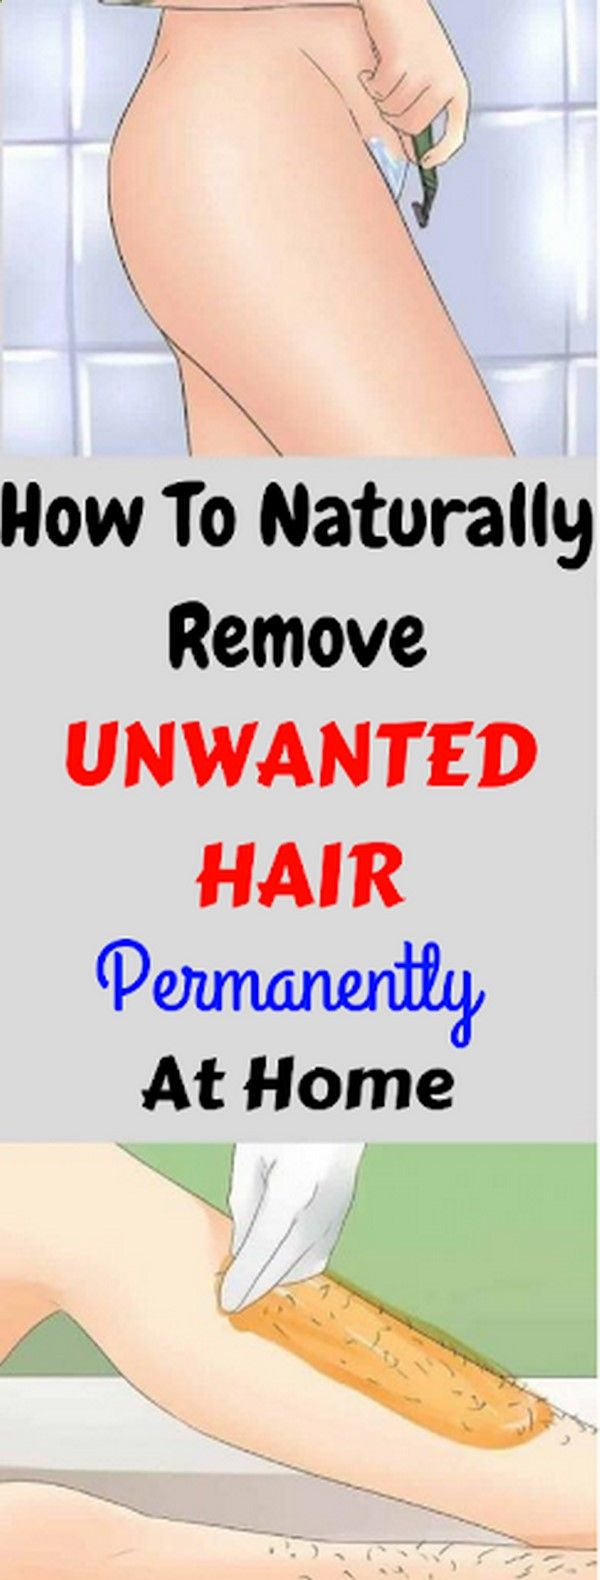 How to Naturally Remove Unwanted Hair Permanently At Home